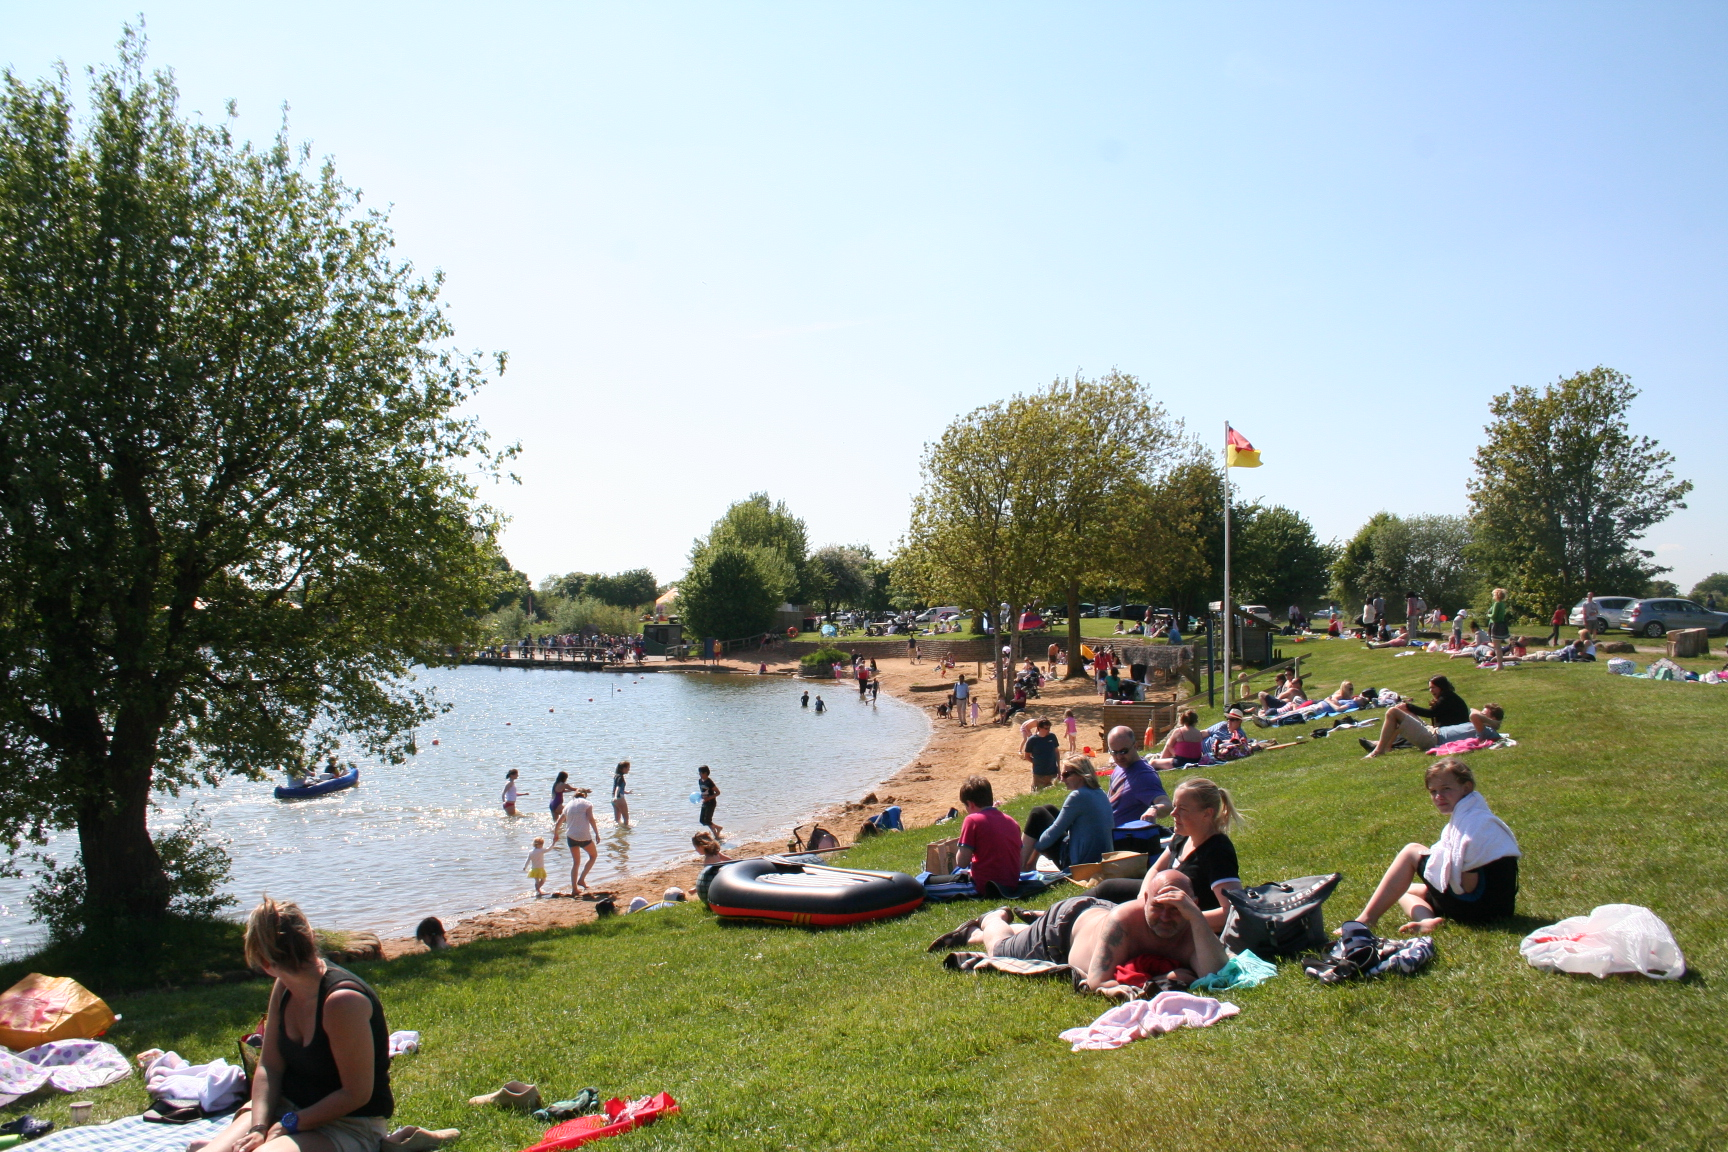 CotswoldCountryPark